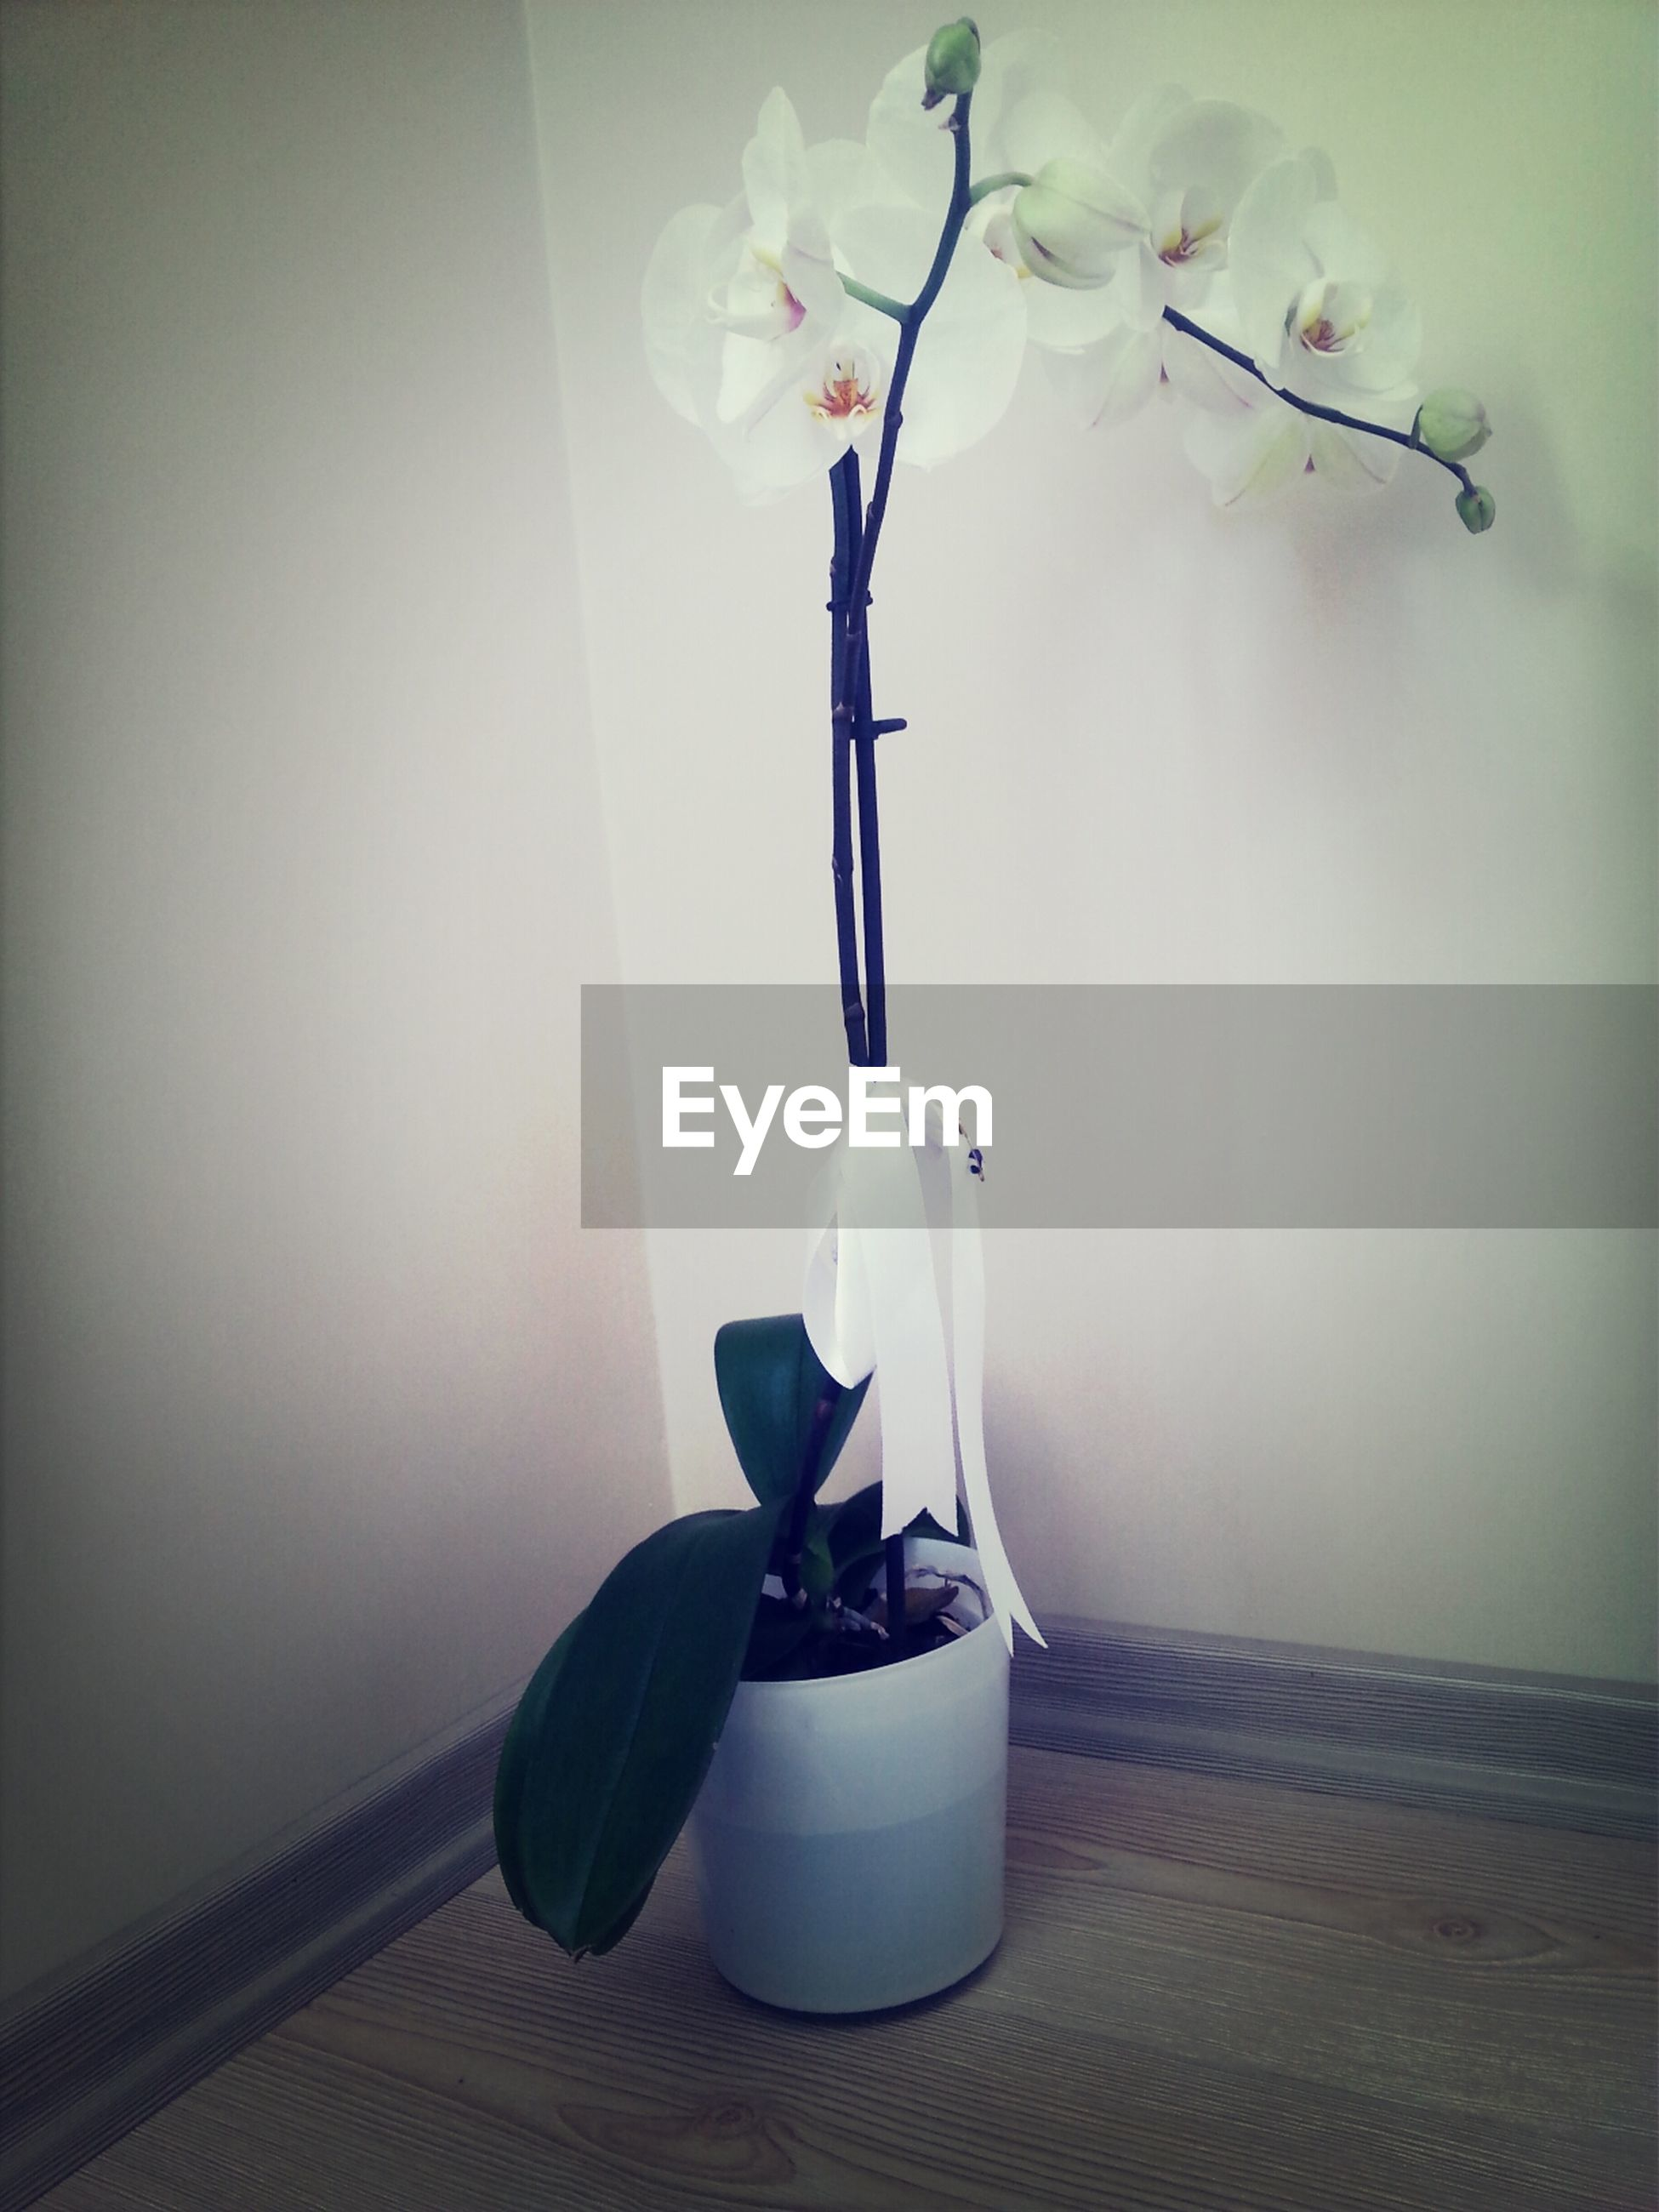 indoors, vase, table, home interior, still life, wall - building feature, flower, glass - material, wall, decoration, hanging, potted plant, transparent, domestic room, bottle, no people, lighting equipment, window sill, copy space, window